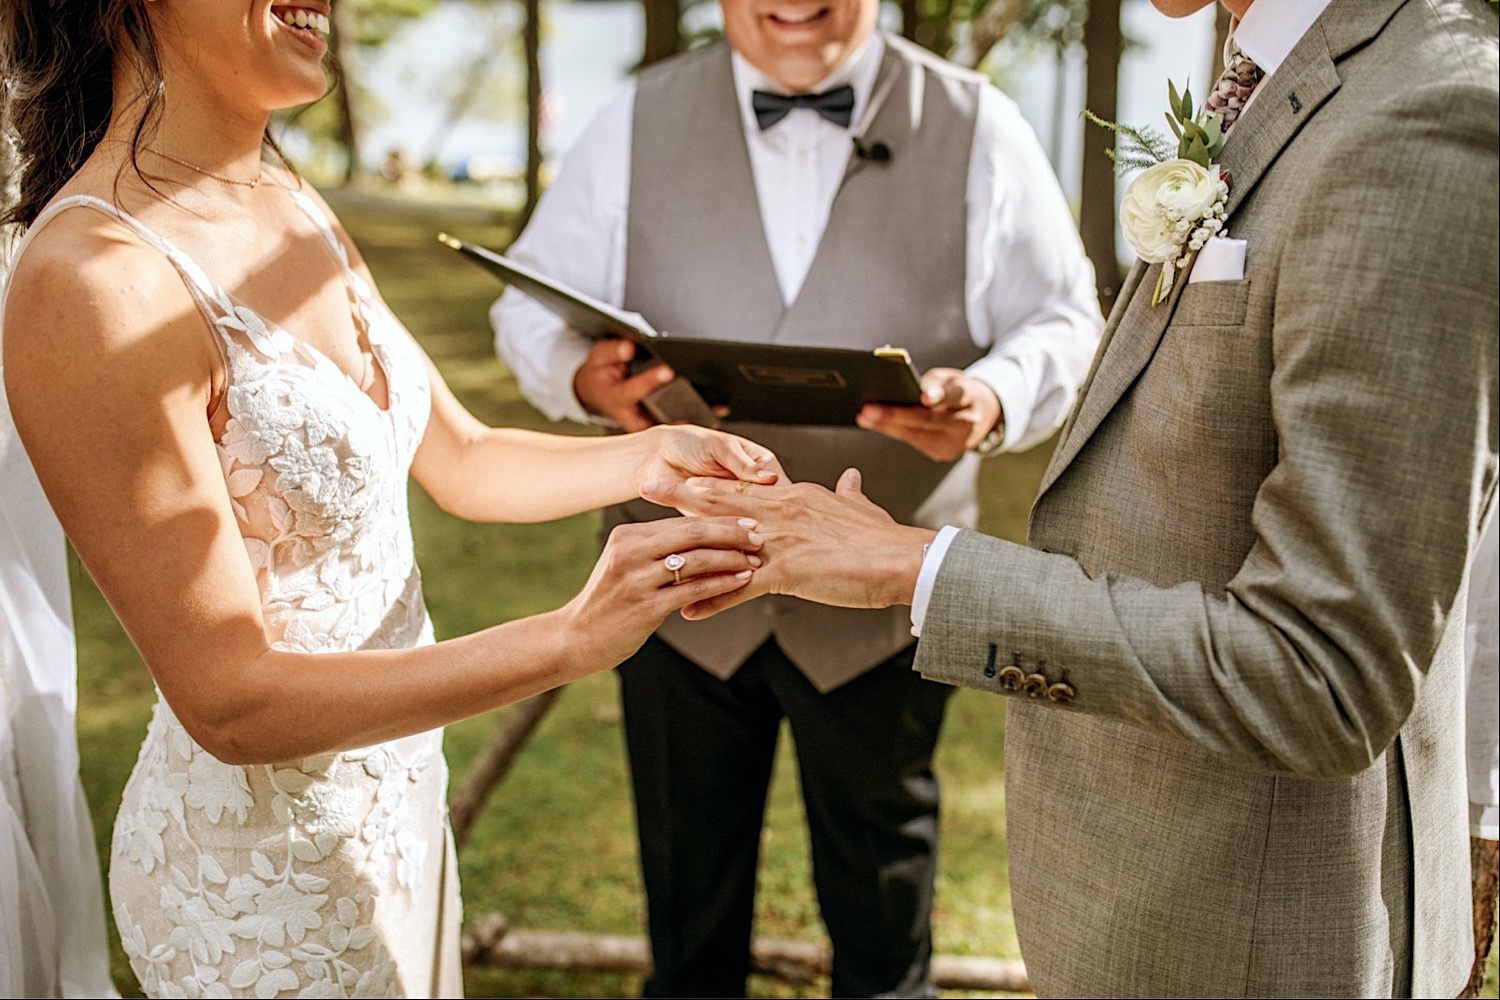 Bomoseen Lodge Wedding - Wedding rings and vows are exchanged during the ceremony